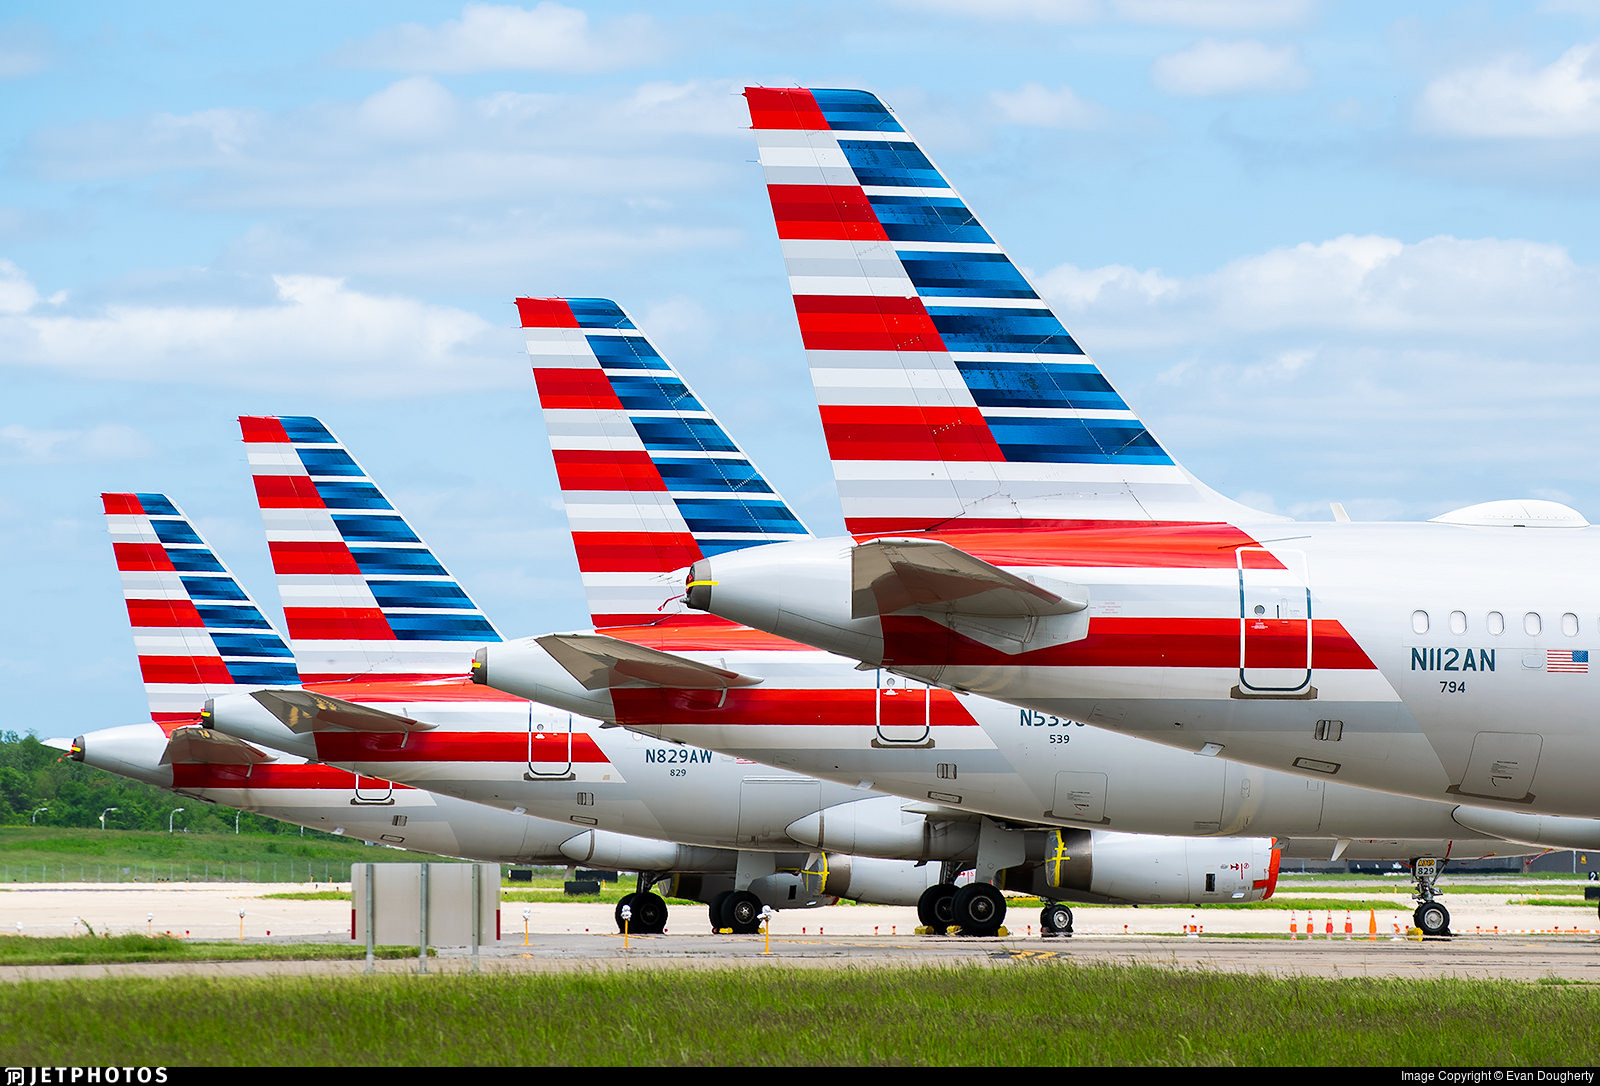 American Airlines aircraft in storage